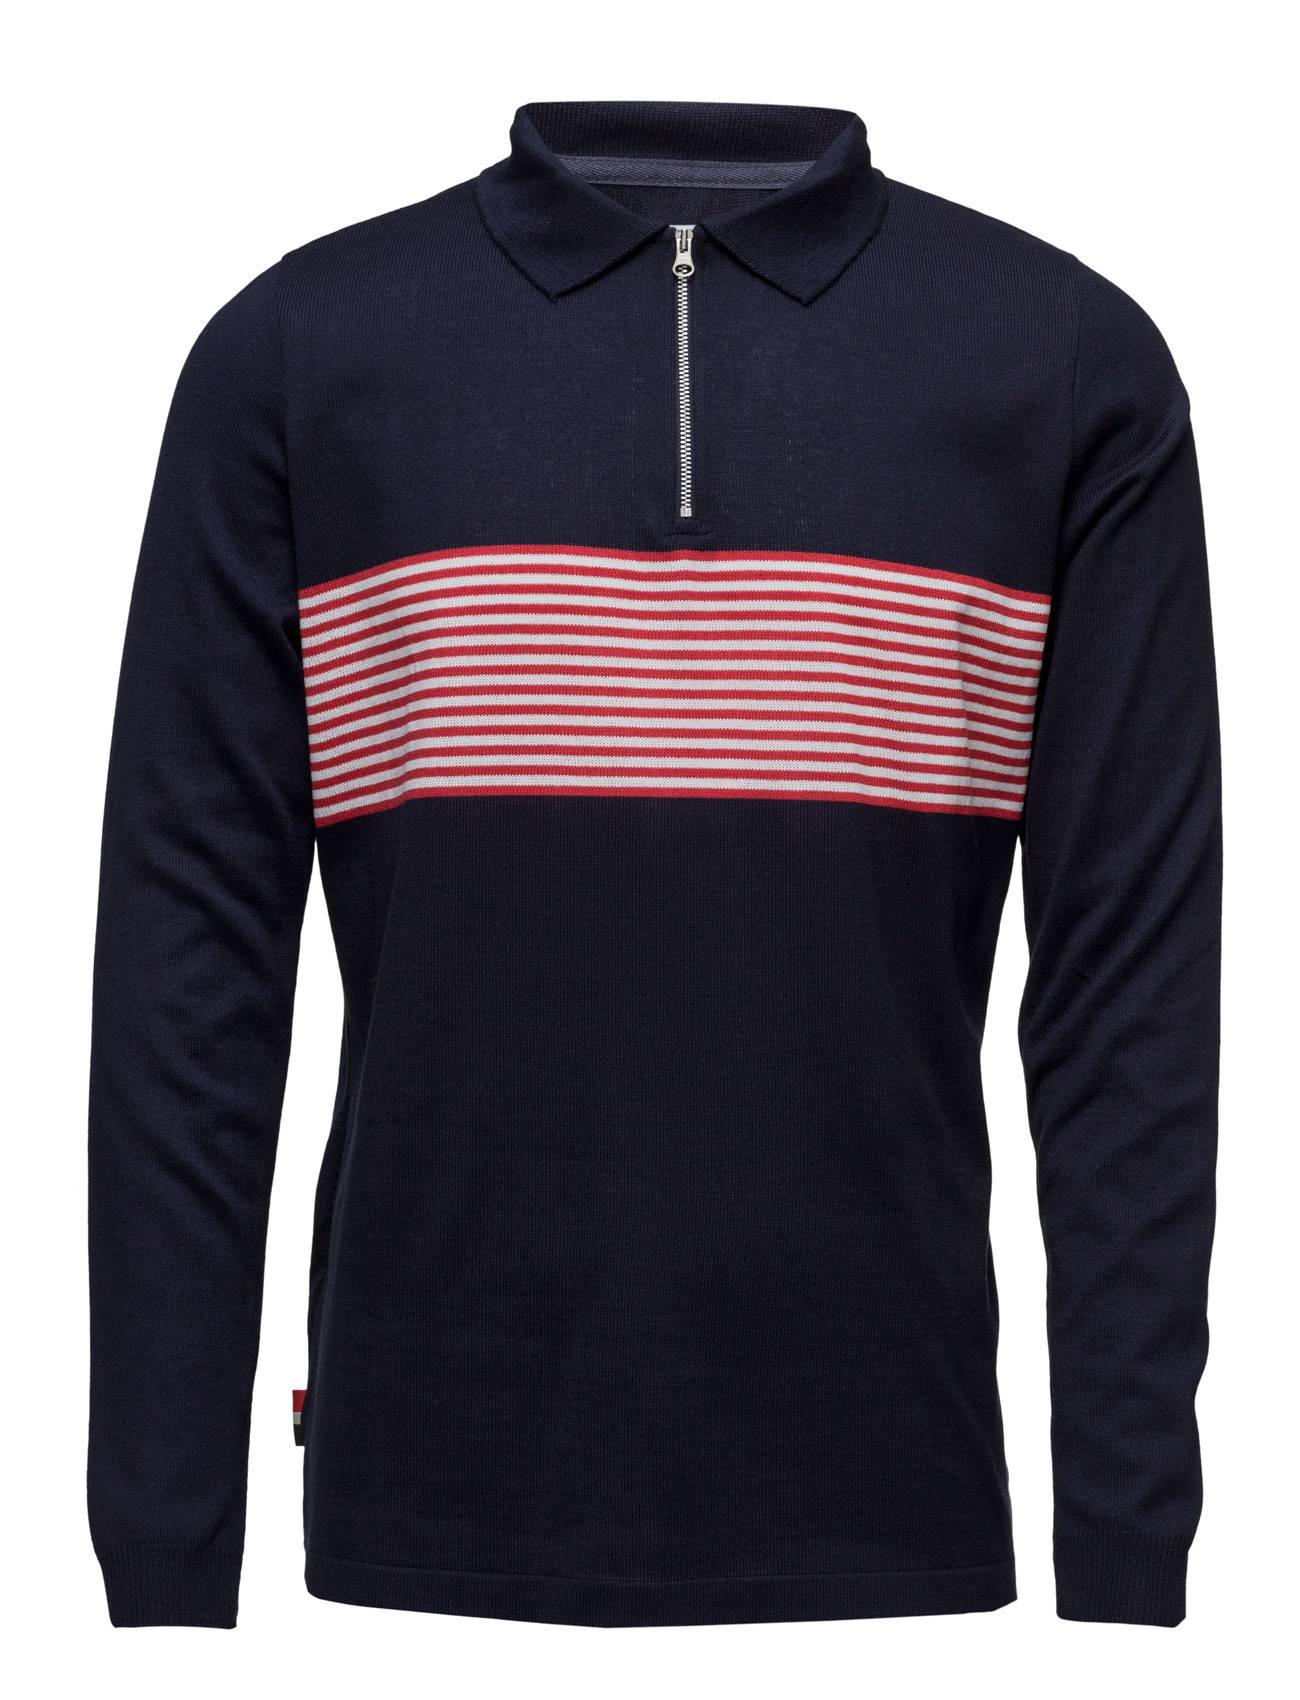 Le-Fix Disorder Polo Knit Ls